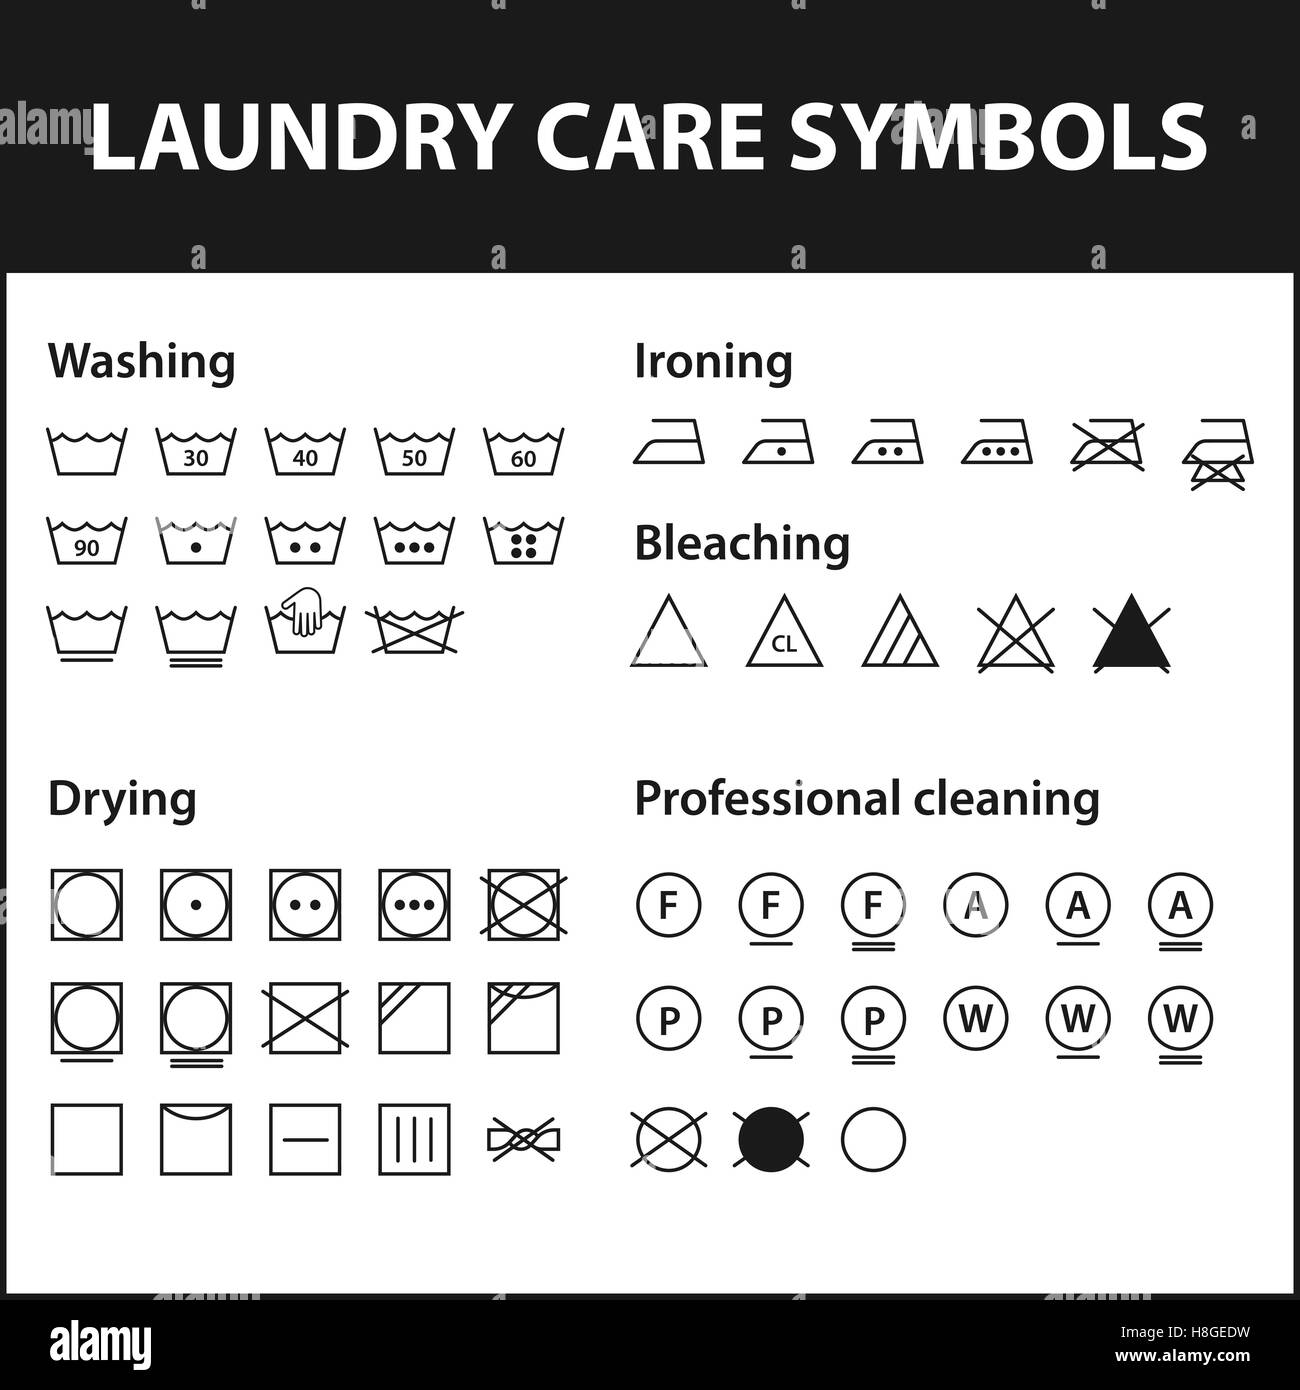 Chlorine water element stock photos chlorine water element stock icon set of laundry symbols washing instruction symbols cloth textile care signs collection urtaz Image collections